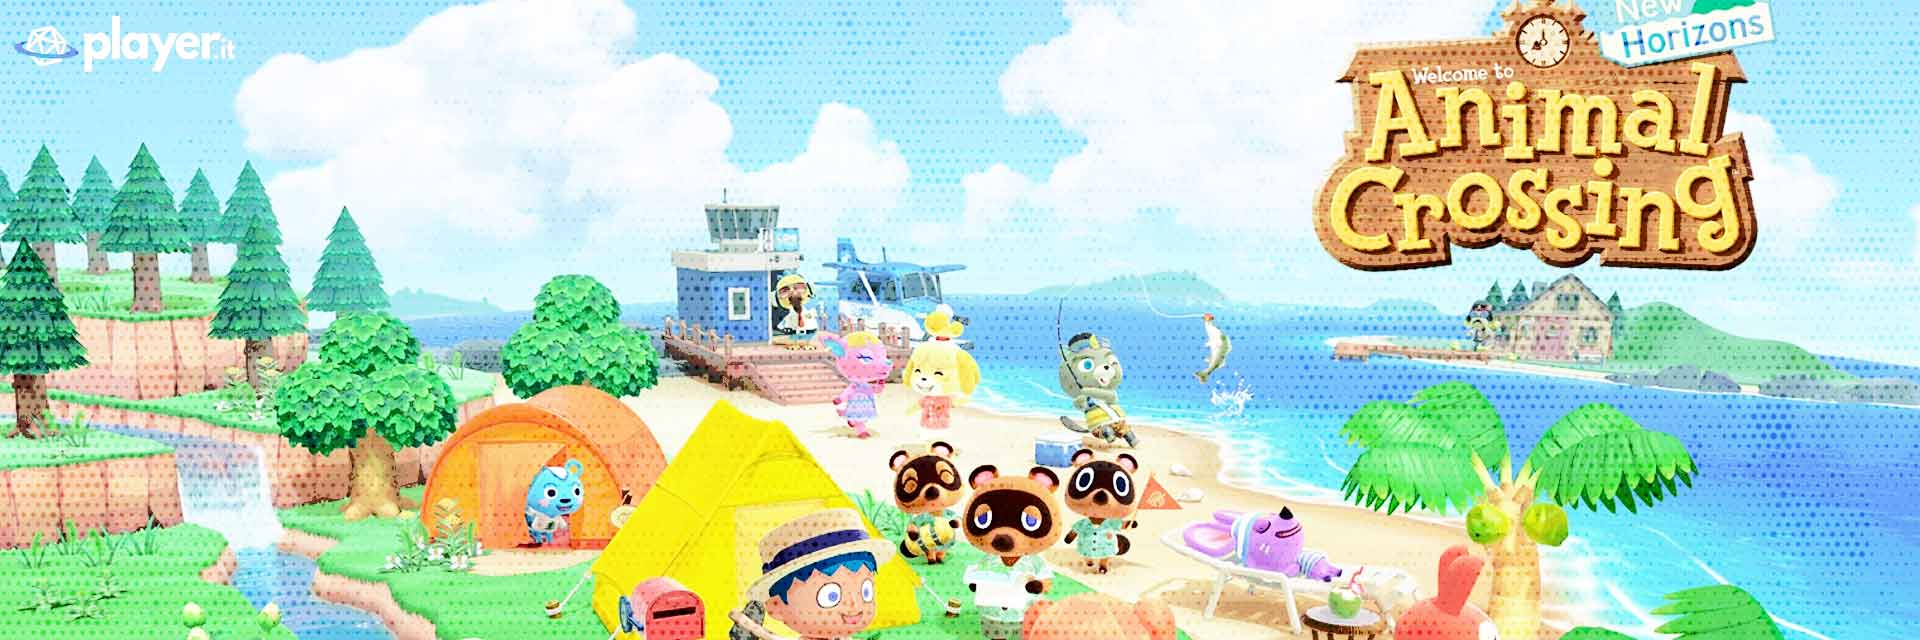 animal crossing new horizon wallpaper in hd